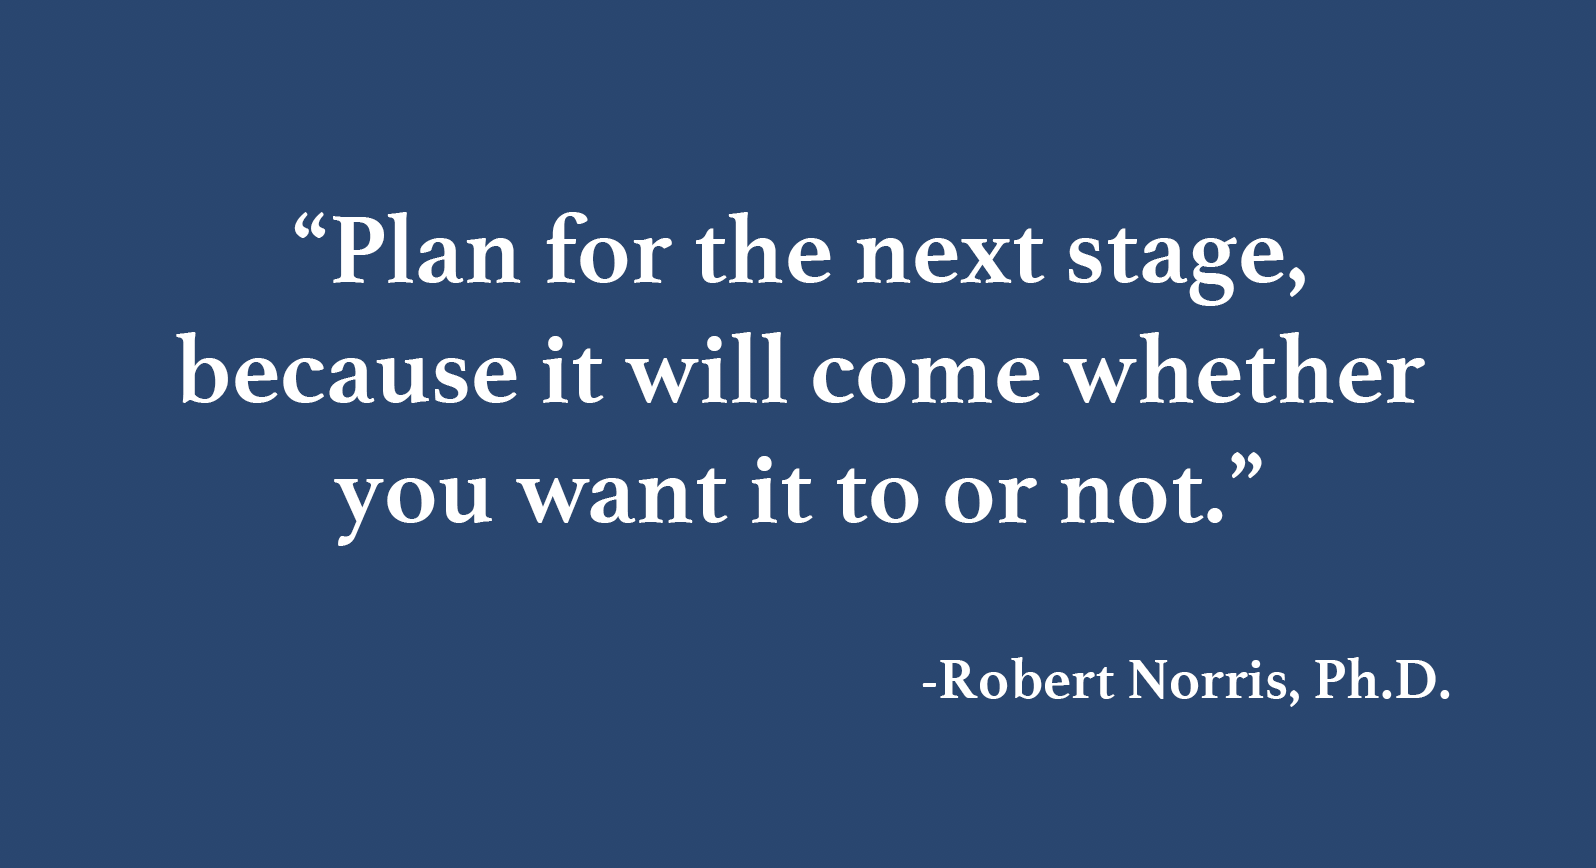 Robert Norris Quote.png